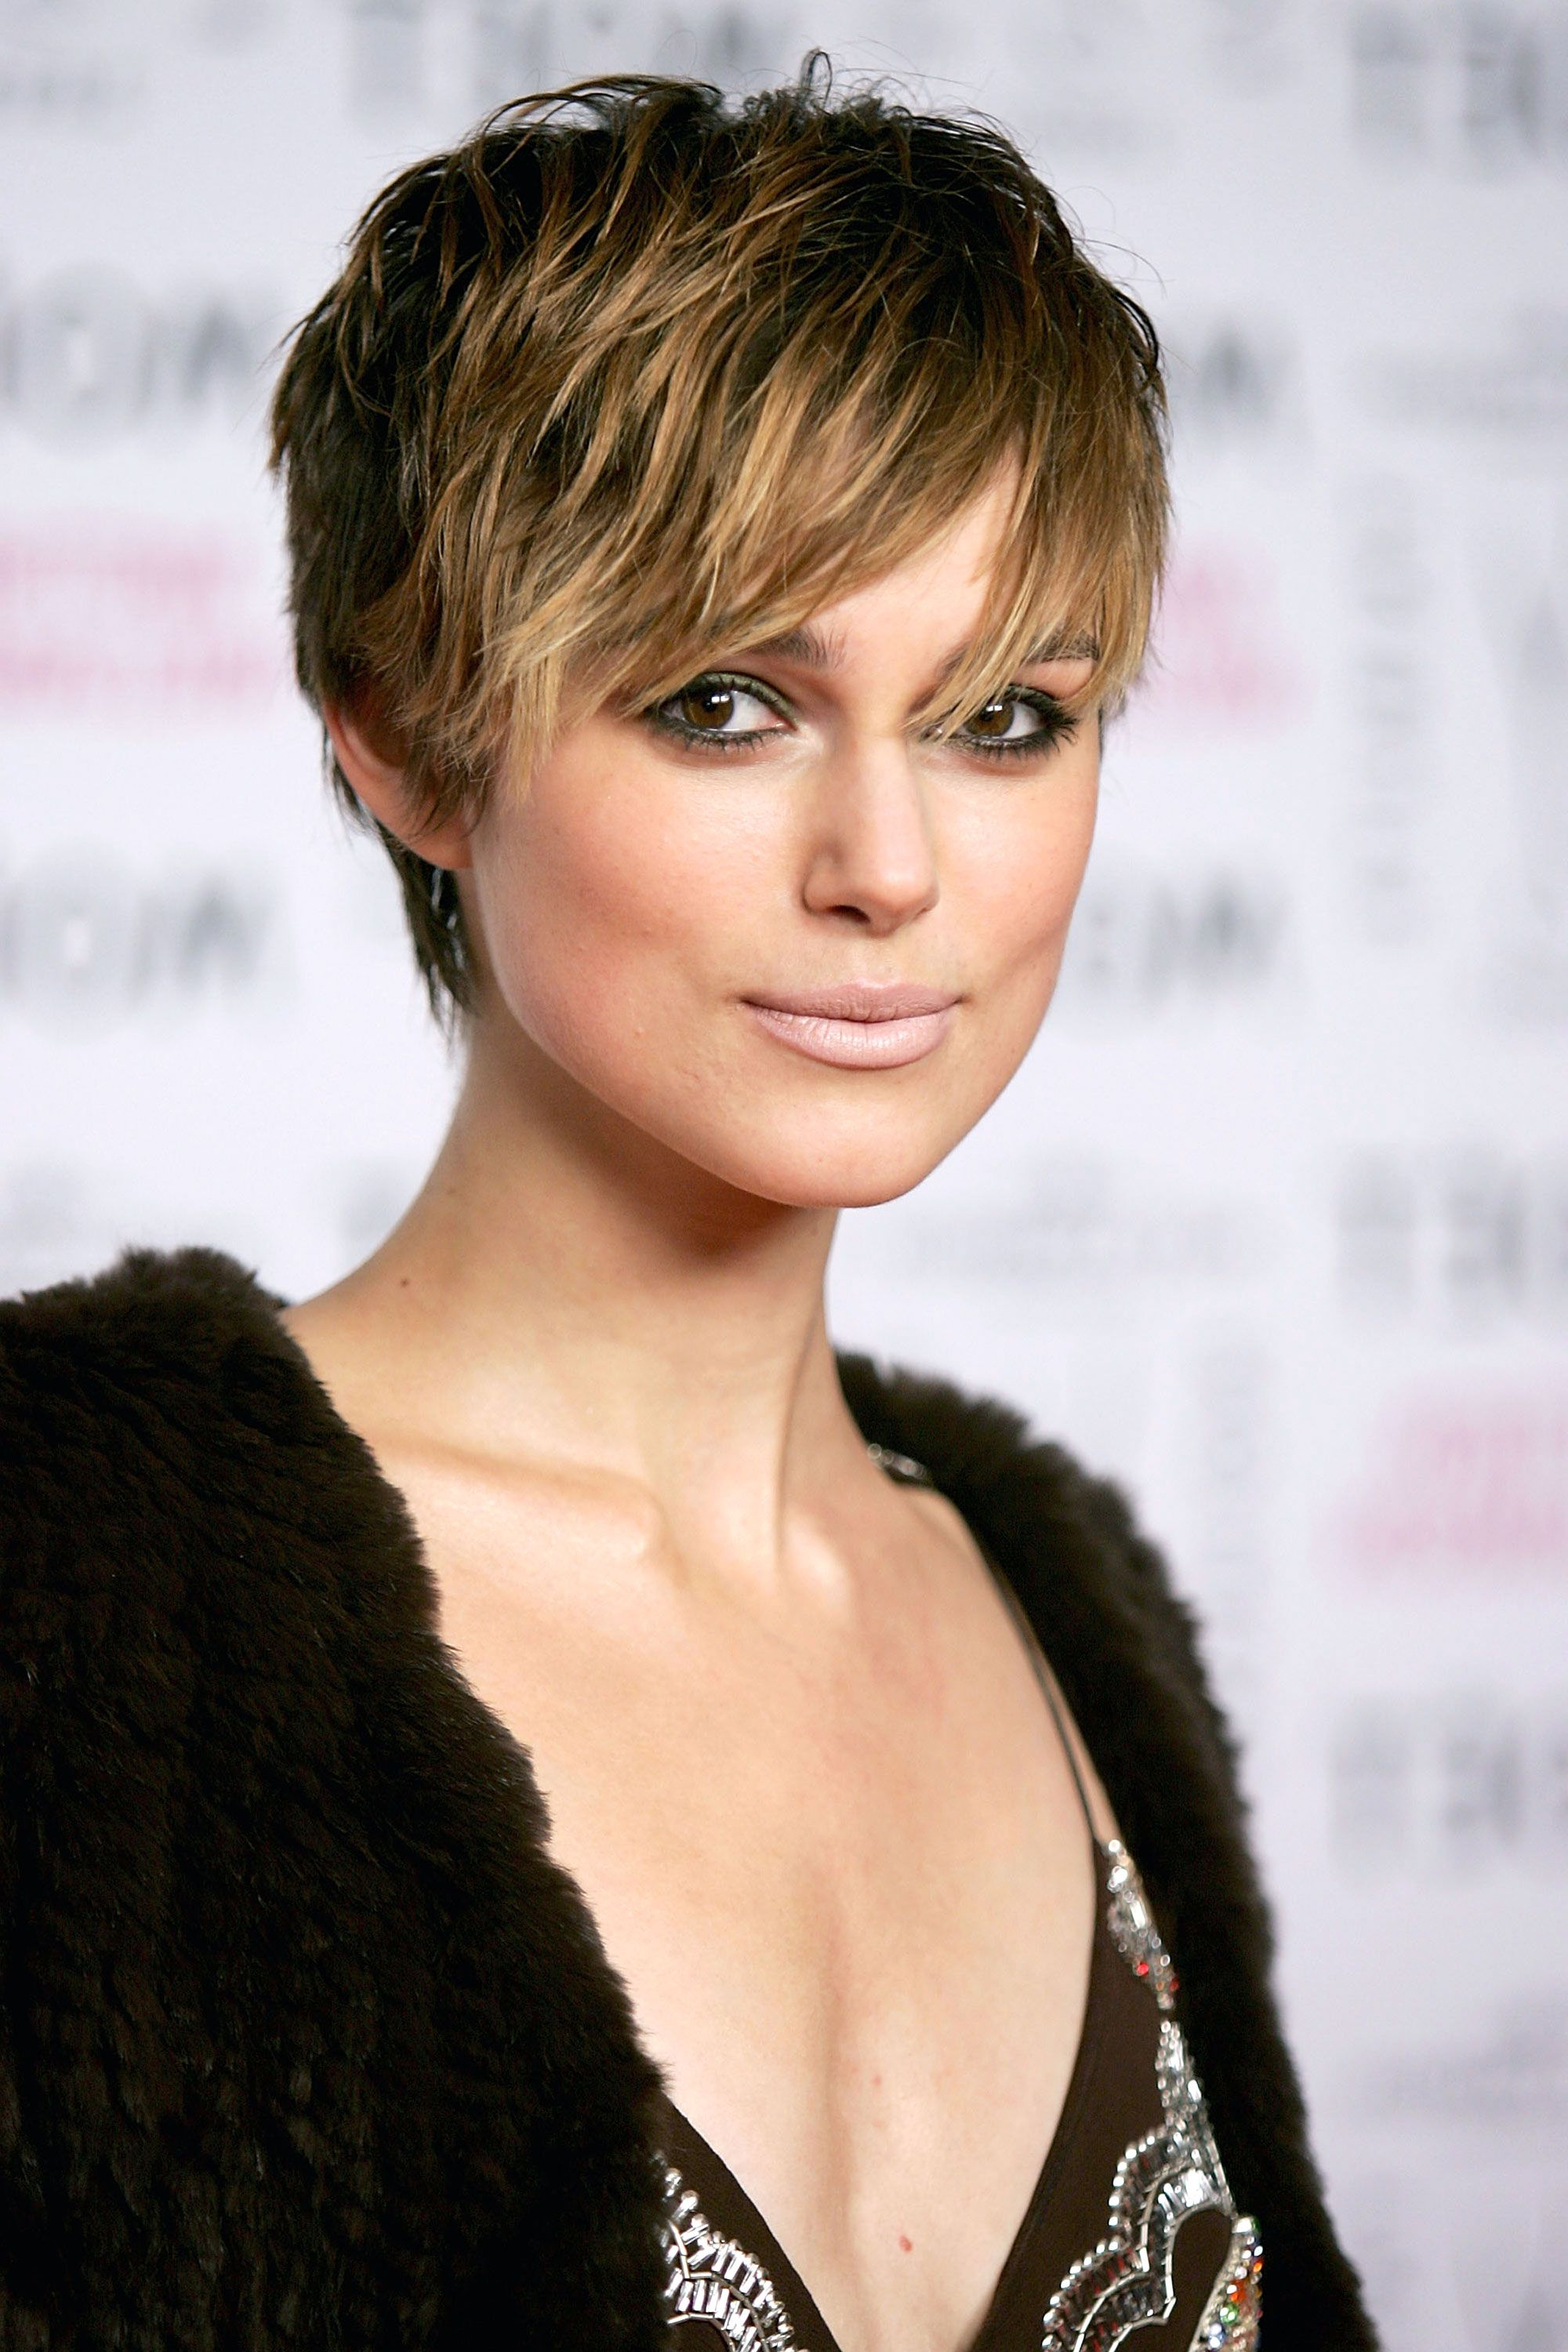 50+ Pixie Cuts We Love For 2018 – Short Pixie Hairstyles From For Summer Short Haircuts (View 3 of 25)